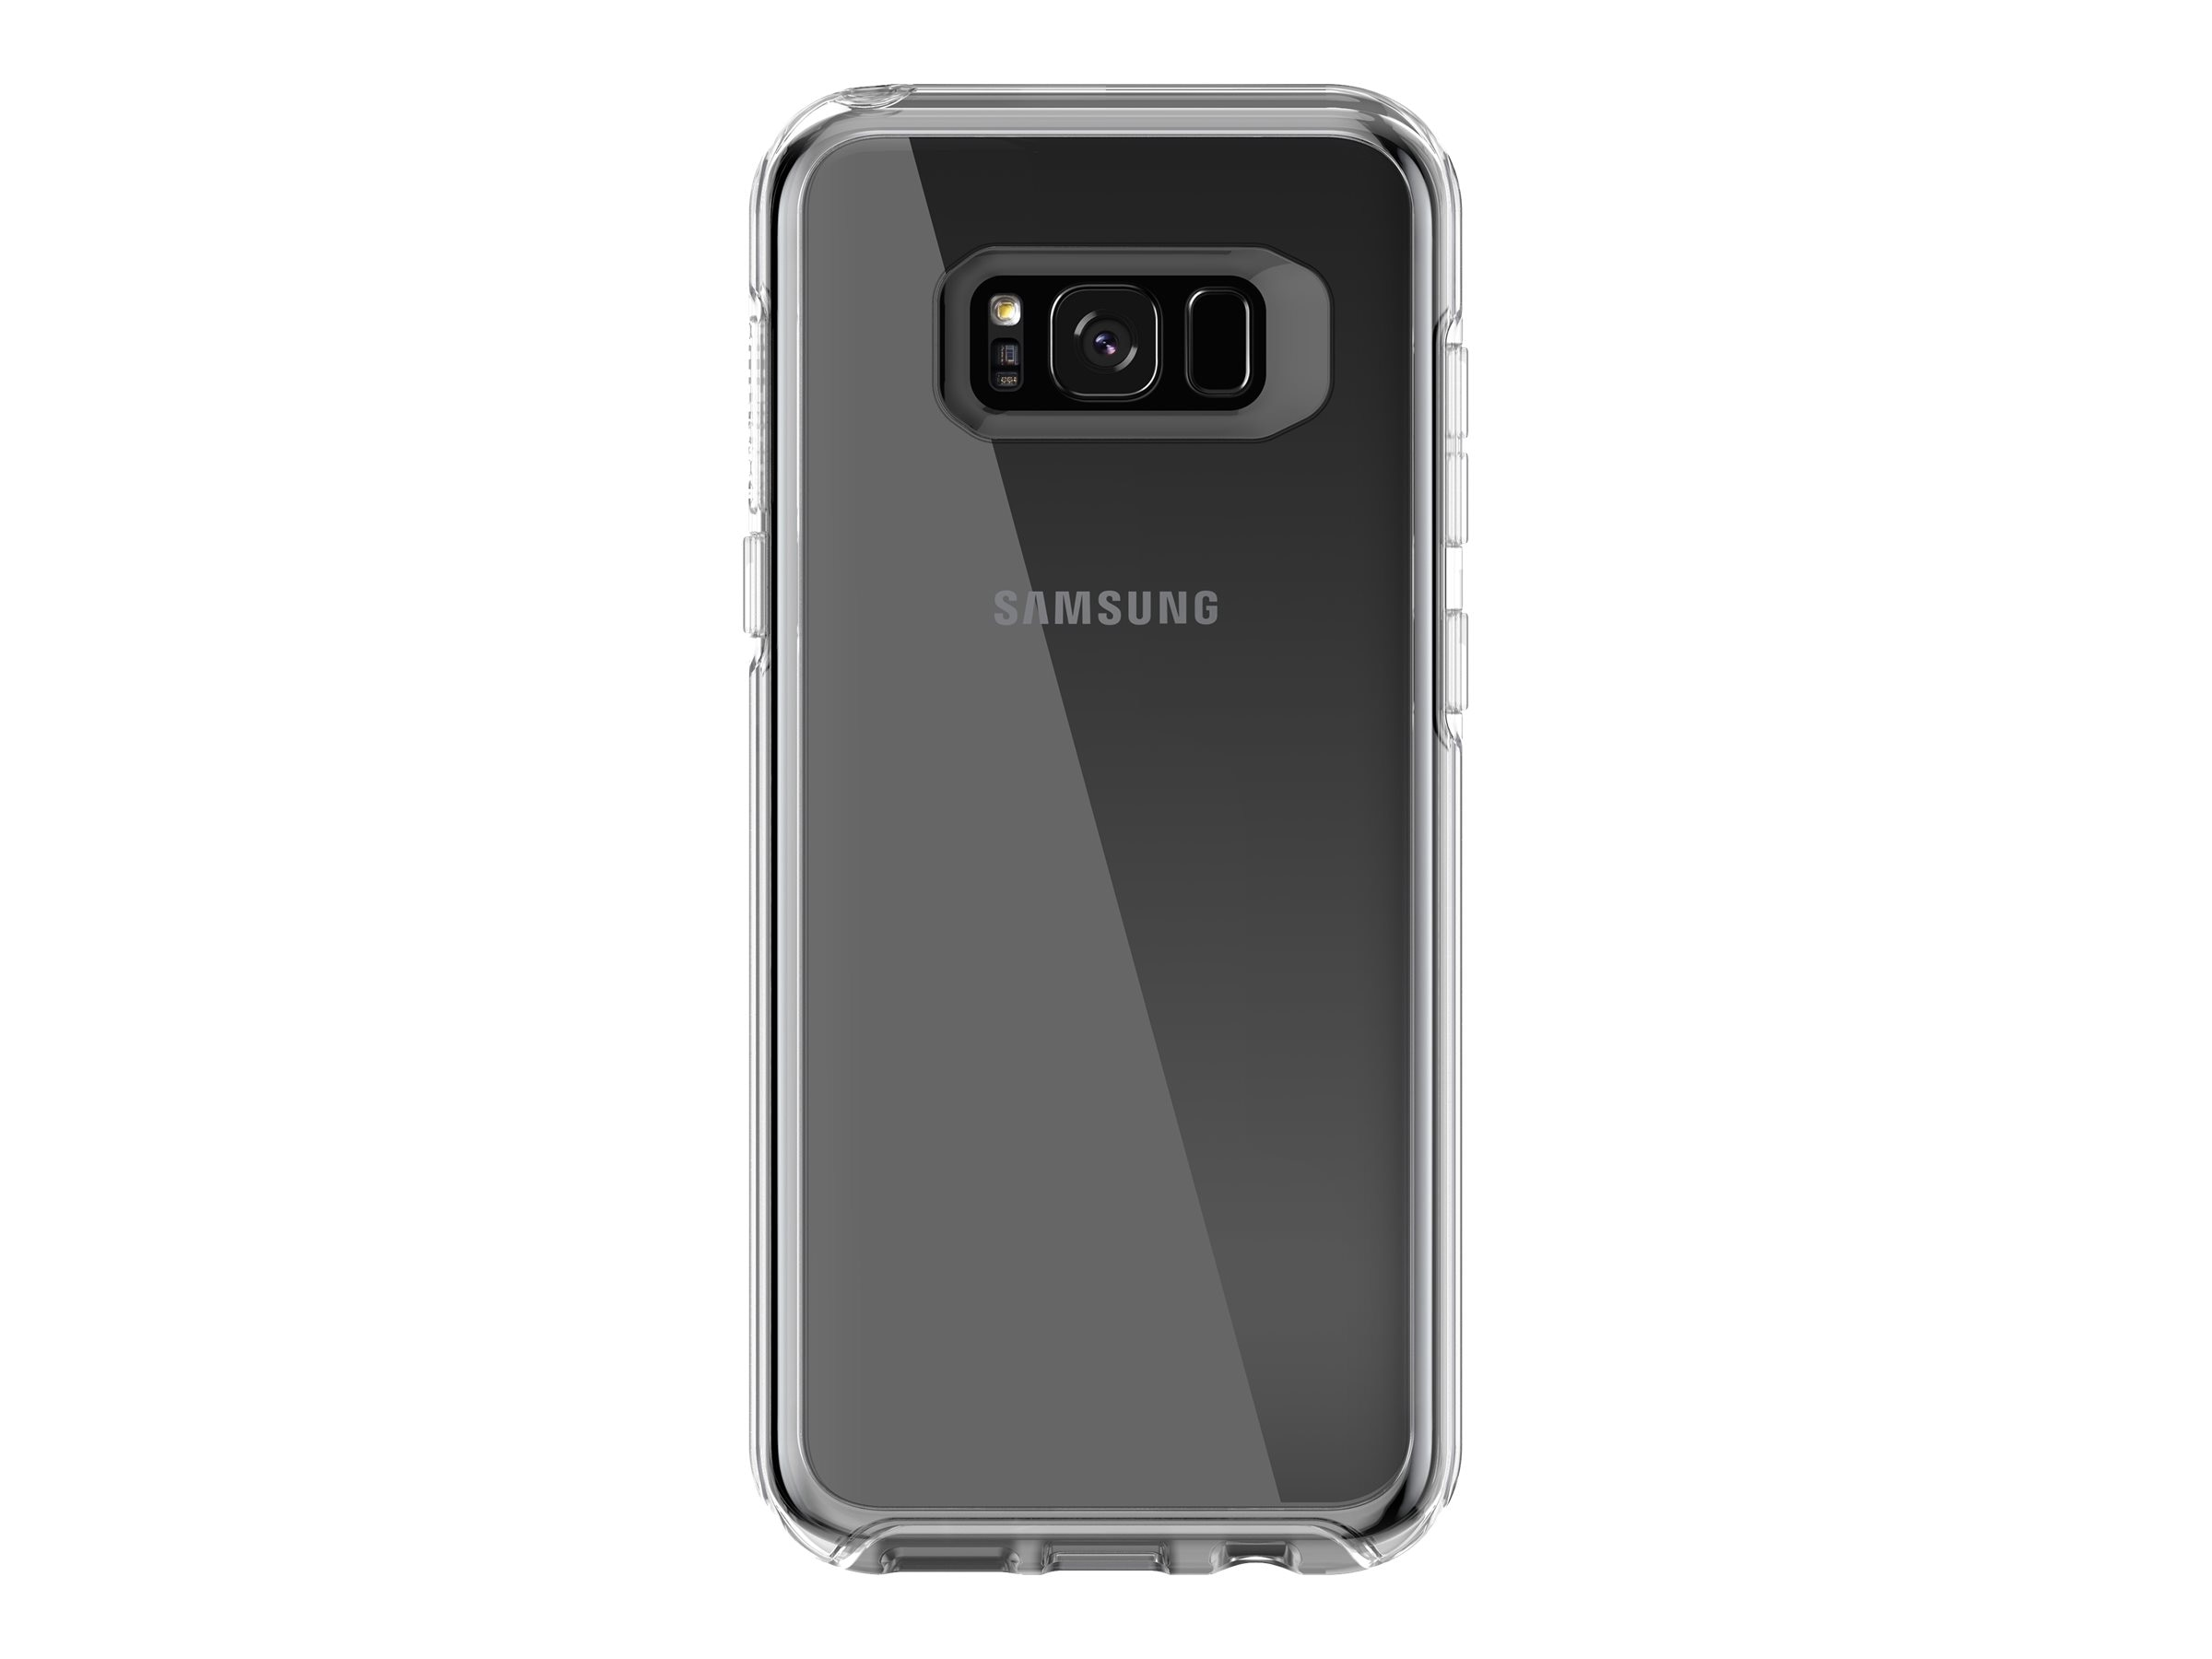 OtterBox Symmetry for Samsung Galaxy S8 Edge, Pro Pack, Clear (20-pack)